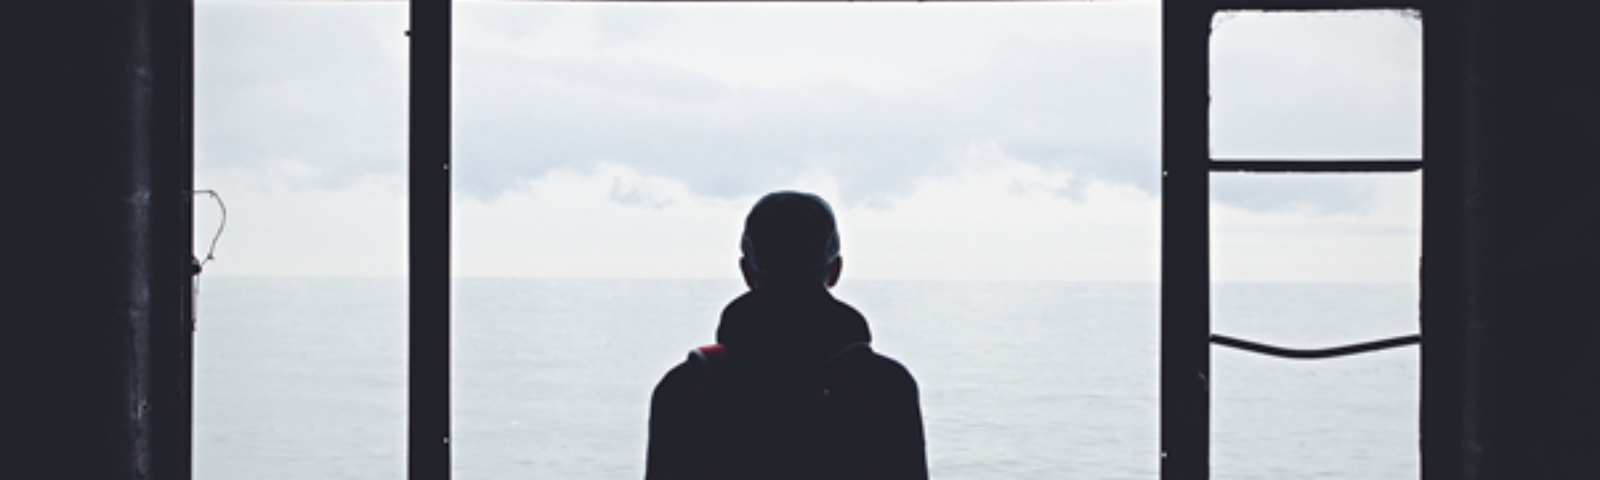 Man looking out of window at the sea, alone